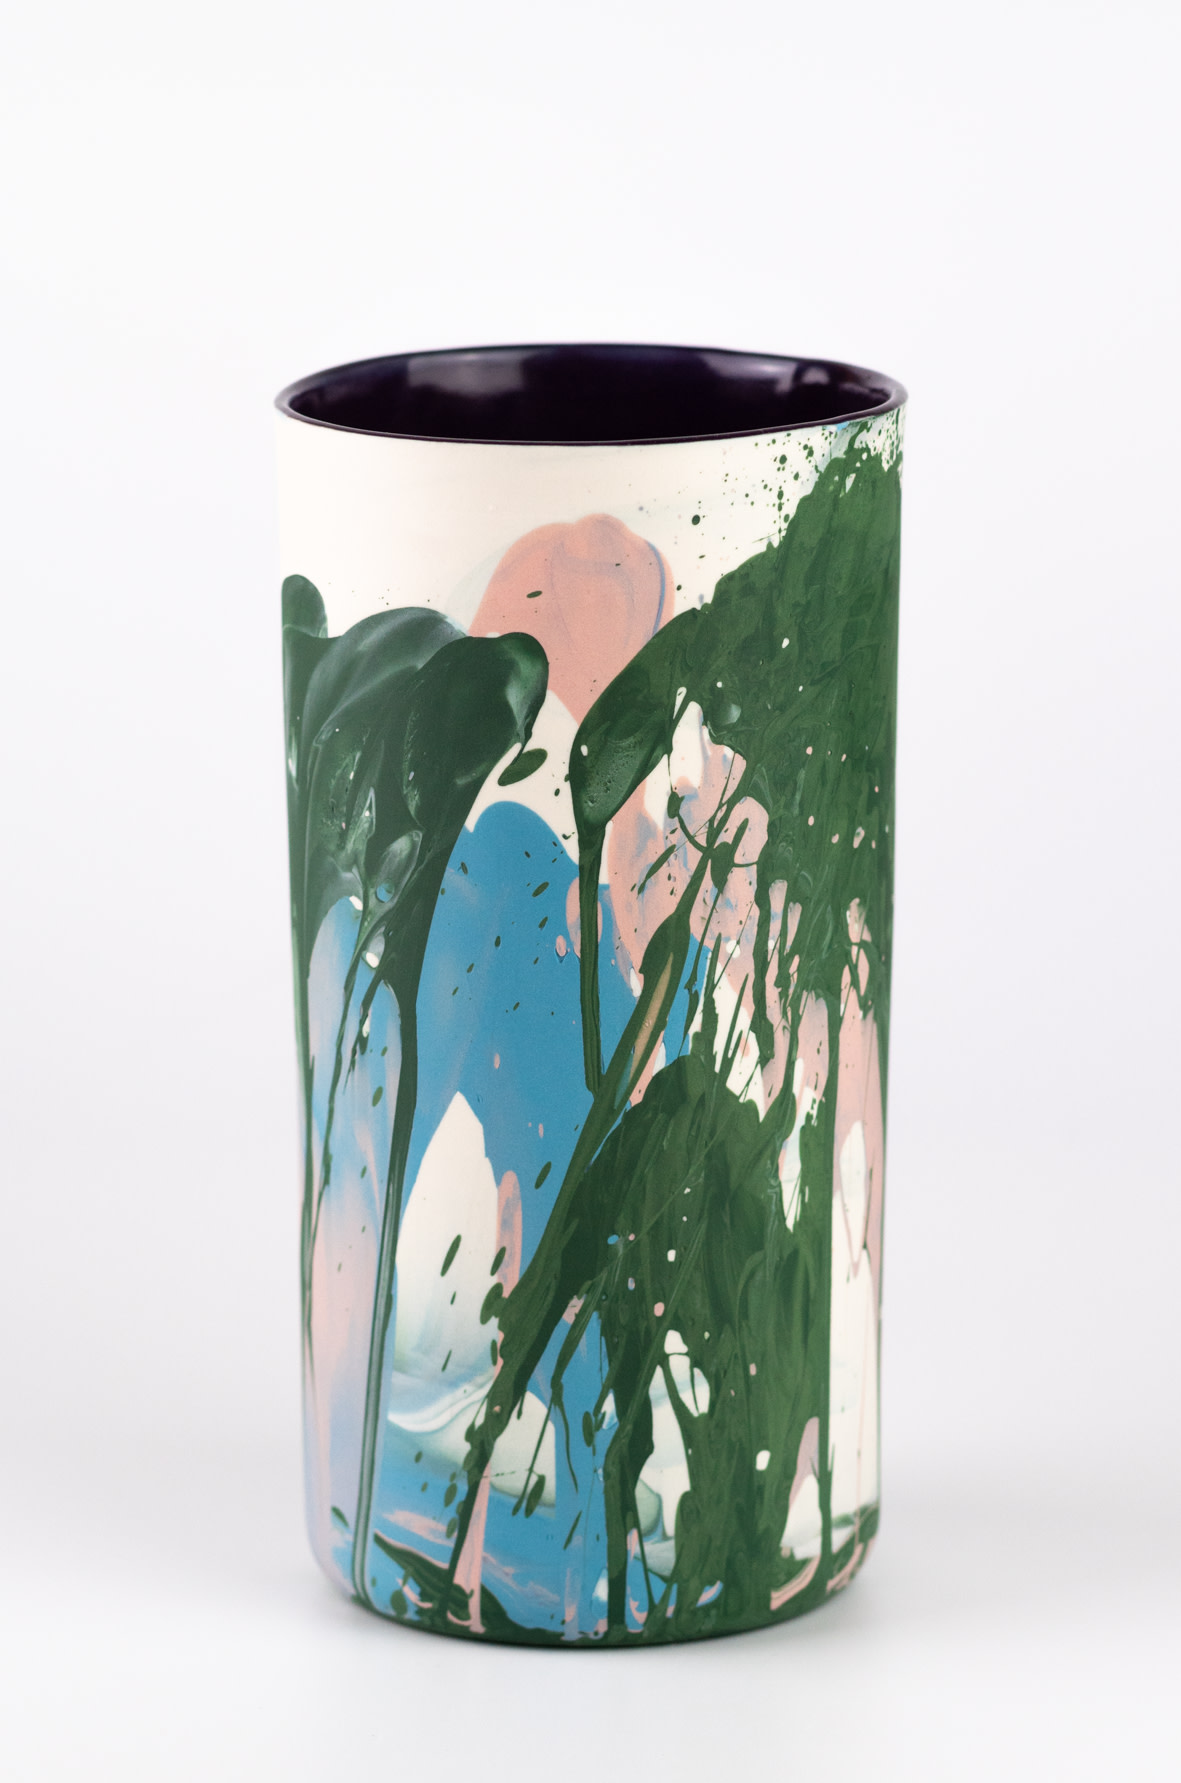 "<span class=""link fancybox-details-link""><a href=""/artists/219-james-pegg/works/6571-james-pegg-fountouki-vase-2019/"">View Detail Page</a></span><div class=""artist""><strong>James Pegg</strong></div> <div class=""title""><em>Fountouki Vase</em>, 2019</div> <div class=""medium"">action-cast stained porcelain with glazed interior</div><div class=""price"">£145.00</div><div class=""copyright_line"">OwnArt: £ 14.50 x 10 months, 0% APR</div>"